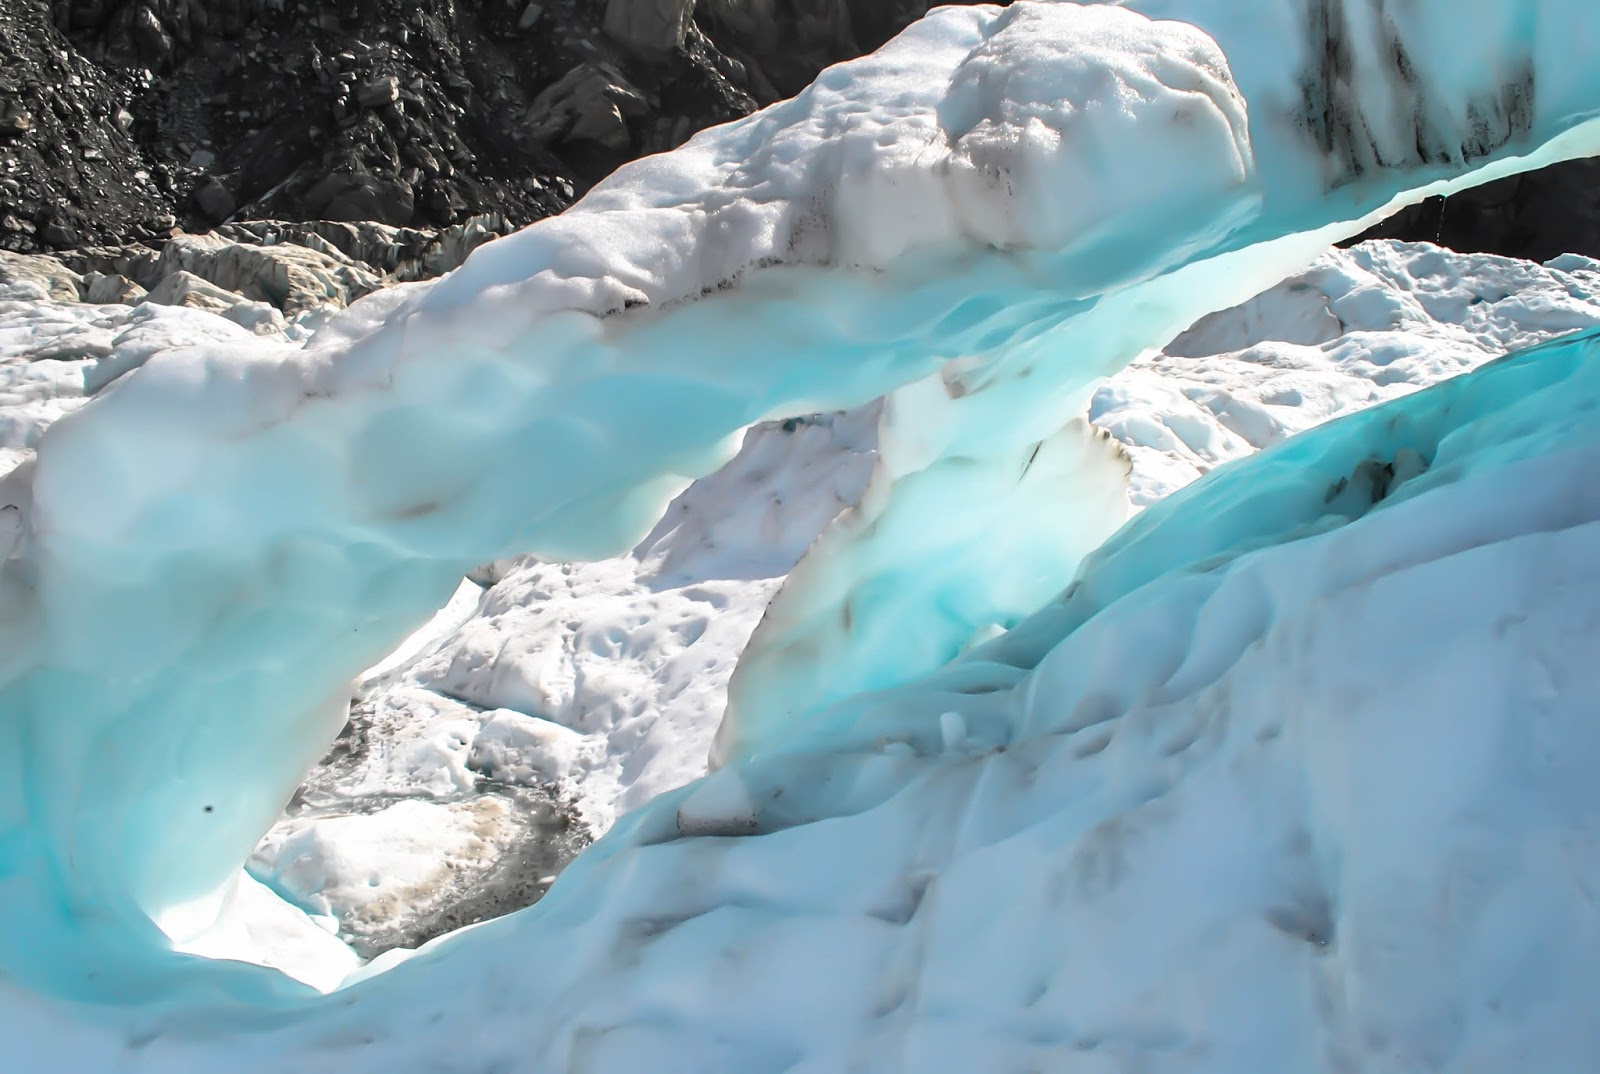 Ice arches at Fox Glacier on the South Island in New Zealand